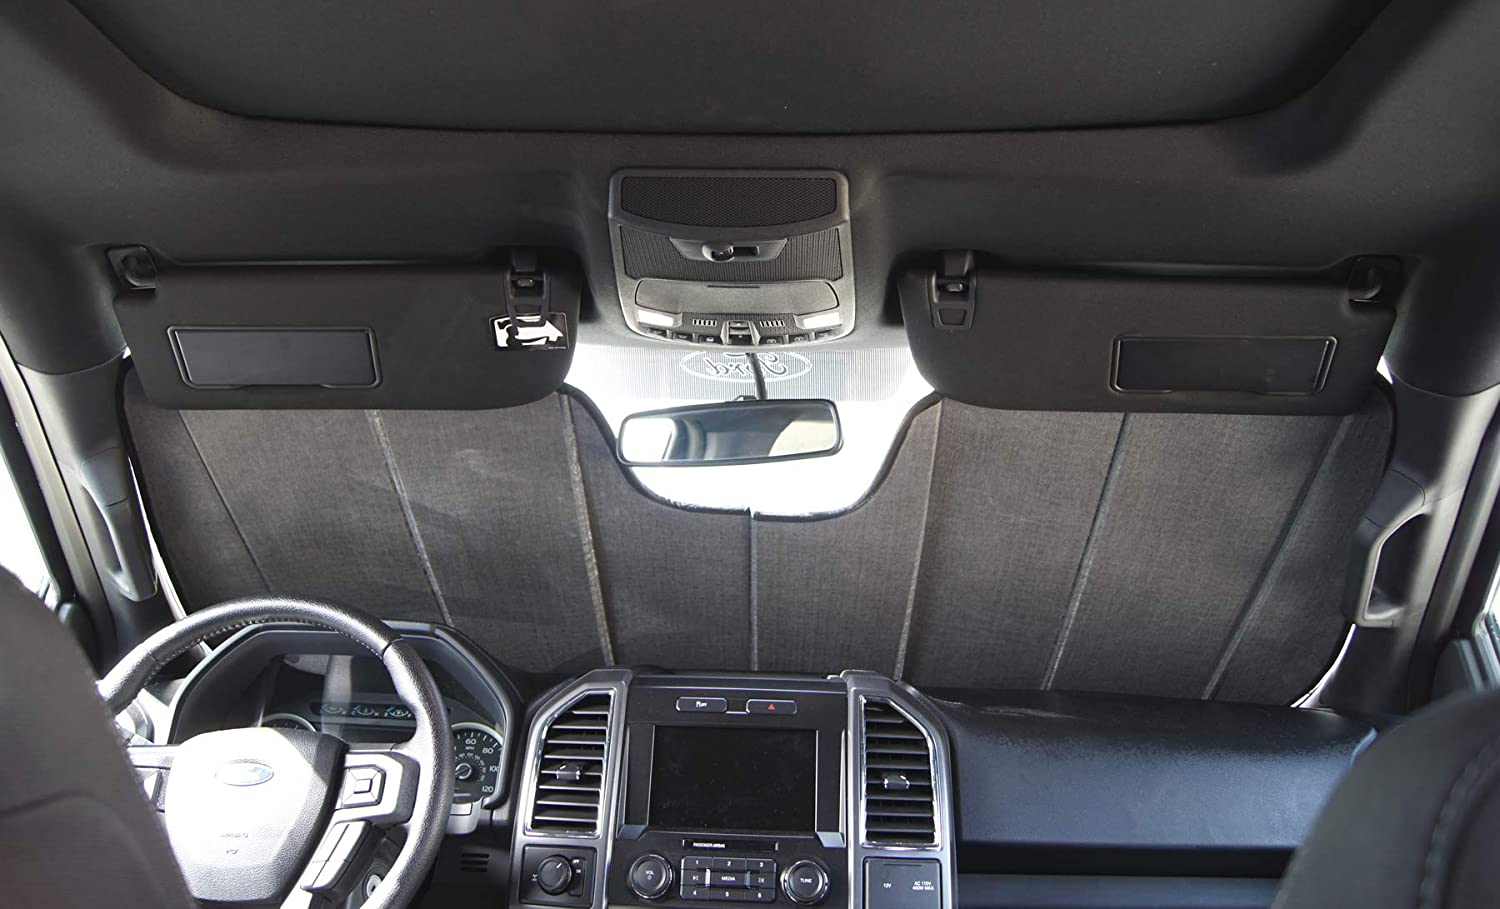 Sunshade Visor Sun Shade in Silver /& Grey 1-pc Set Compatible With 2012-2018 Audi A6 S6 TuningPros CFS-012-S Custom Fit Fold Up Thermal Shade Car Windshield Protector